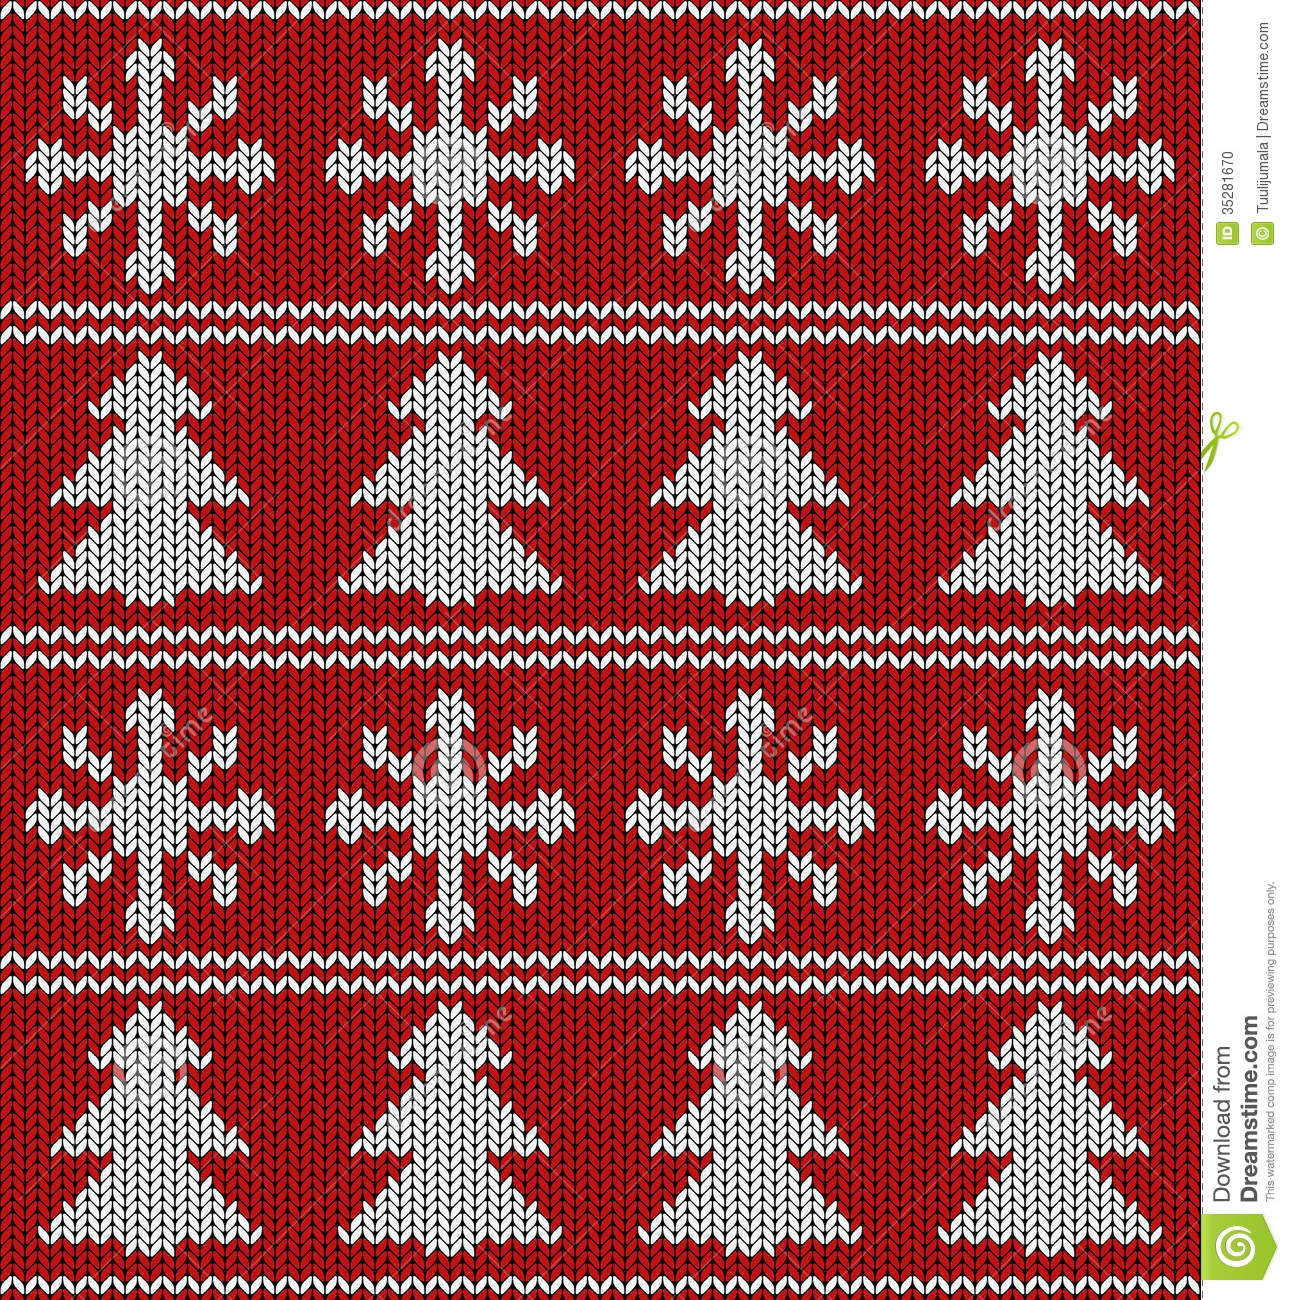 Knitting Vector Patterns : Seamless christmas pattern stock vector image of handmade